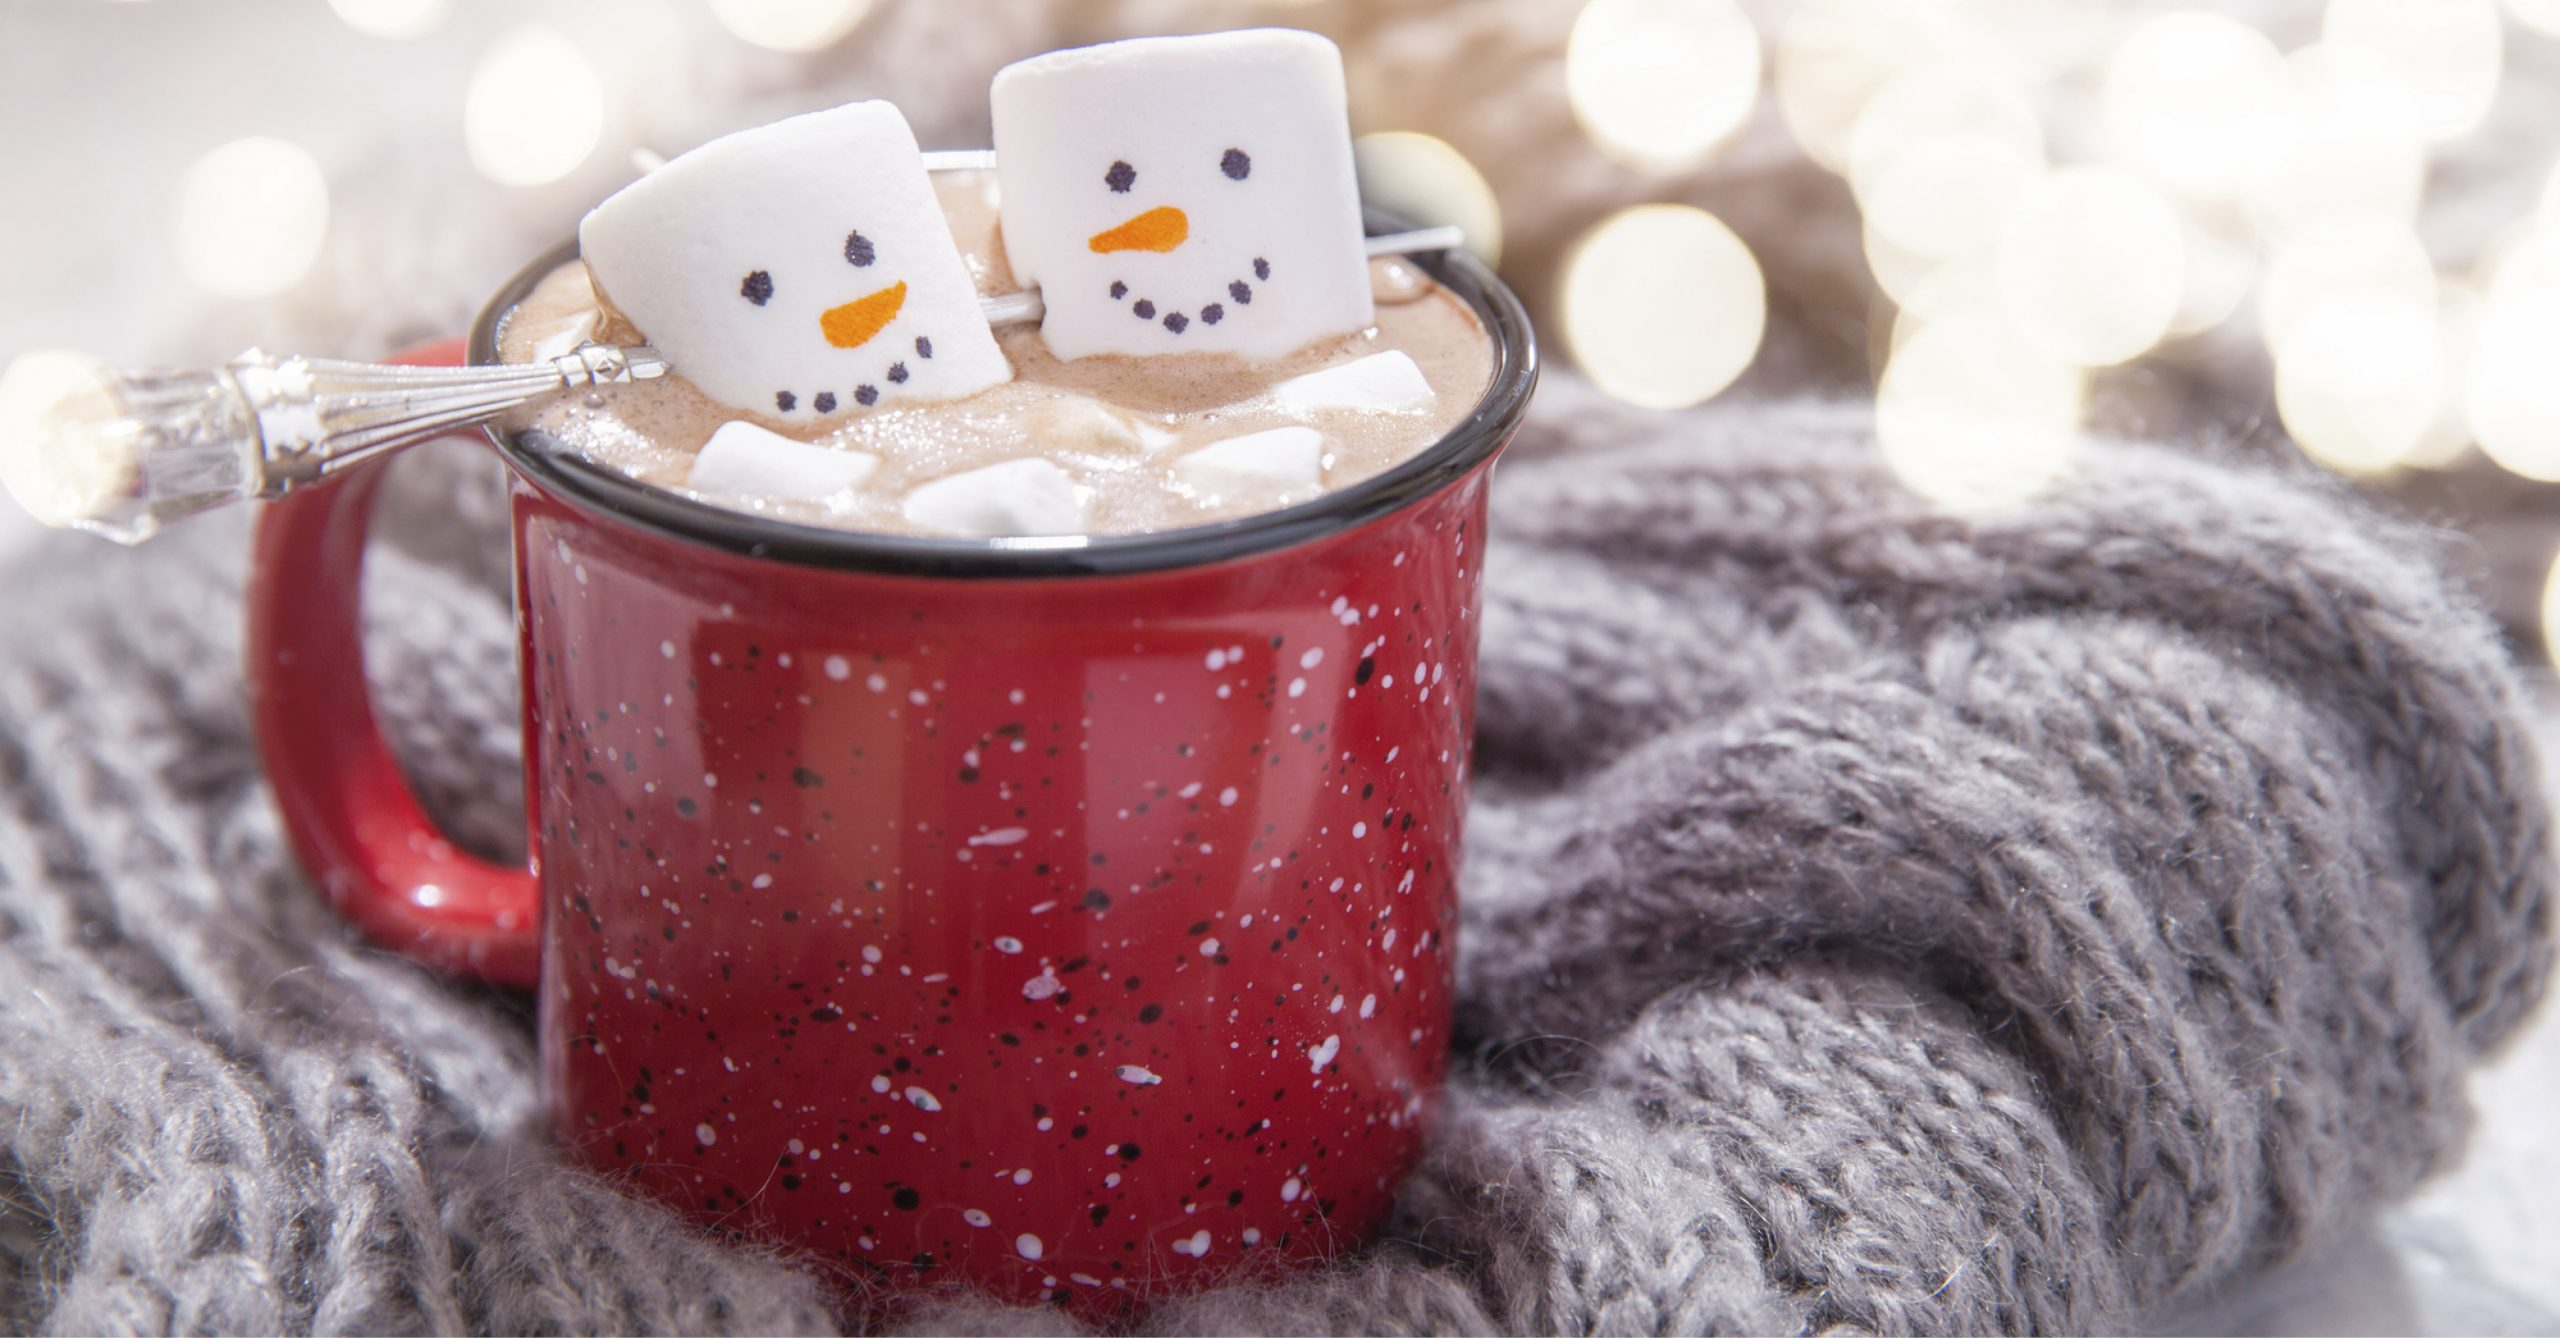 How To Relax And Rejuvenate Over The Holidays